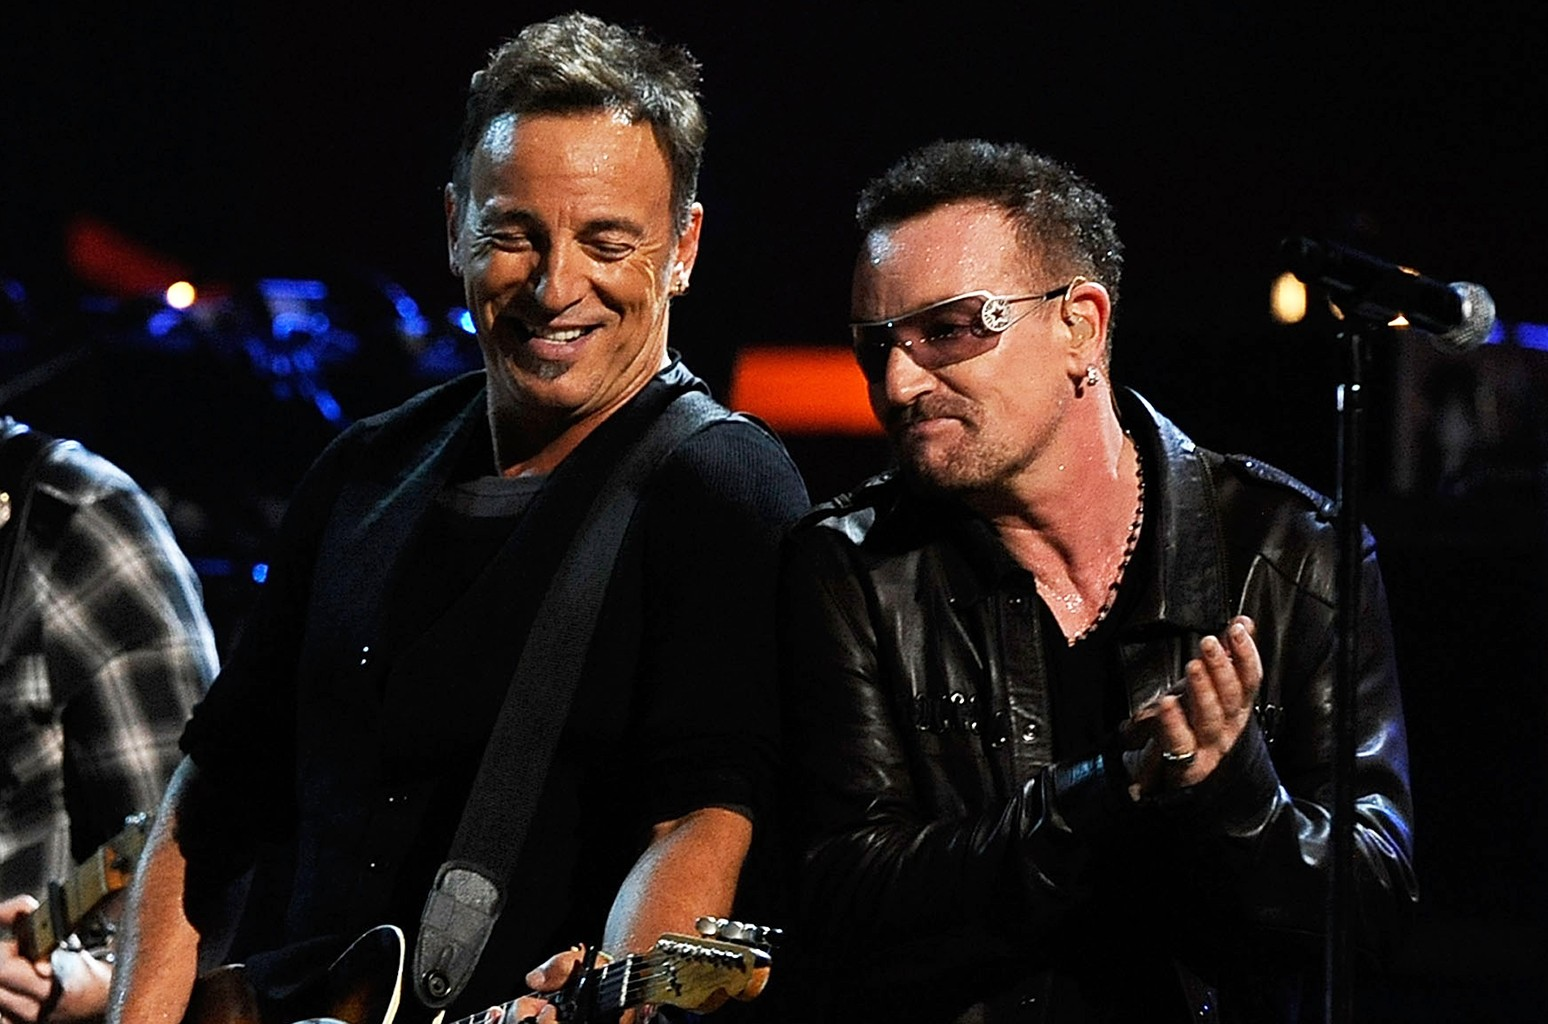 Bruce Springsteen and Bono perform at Madison Square Garden